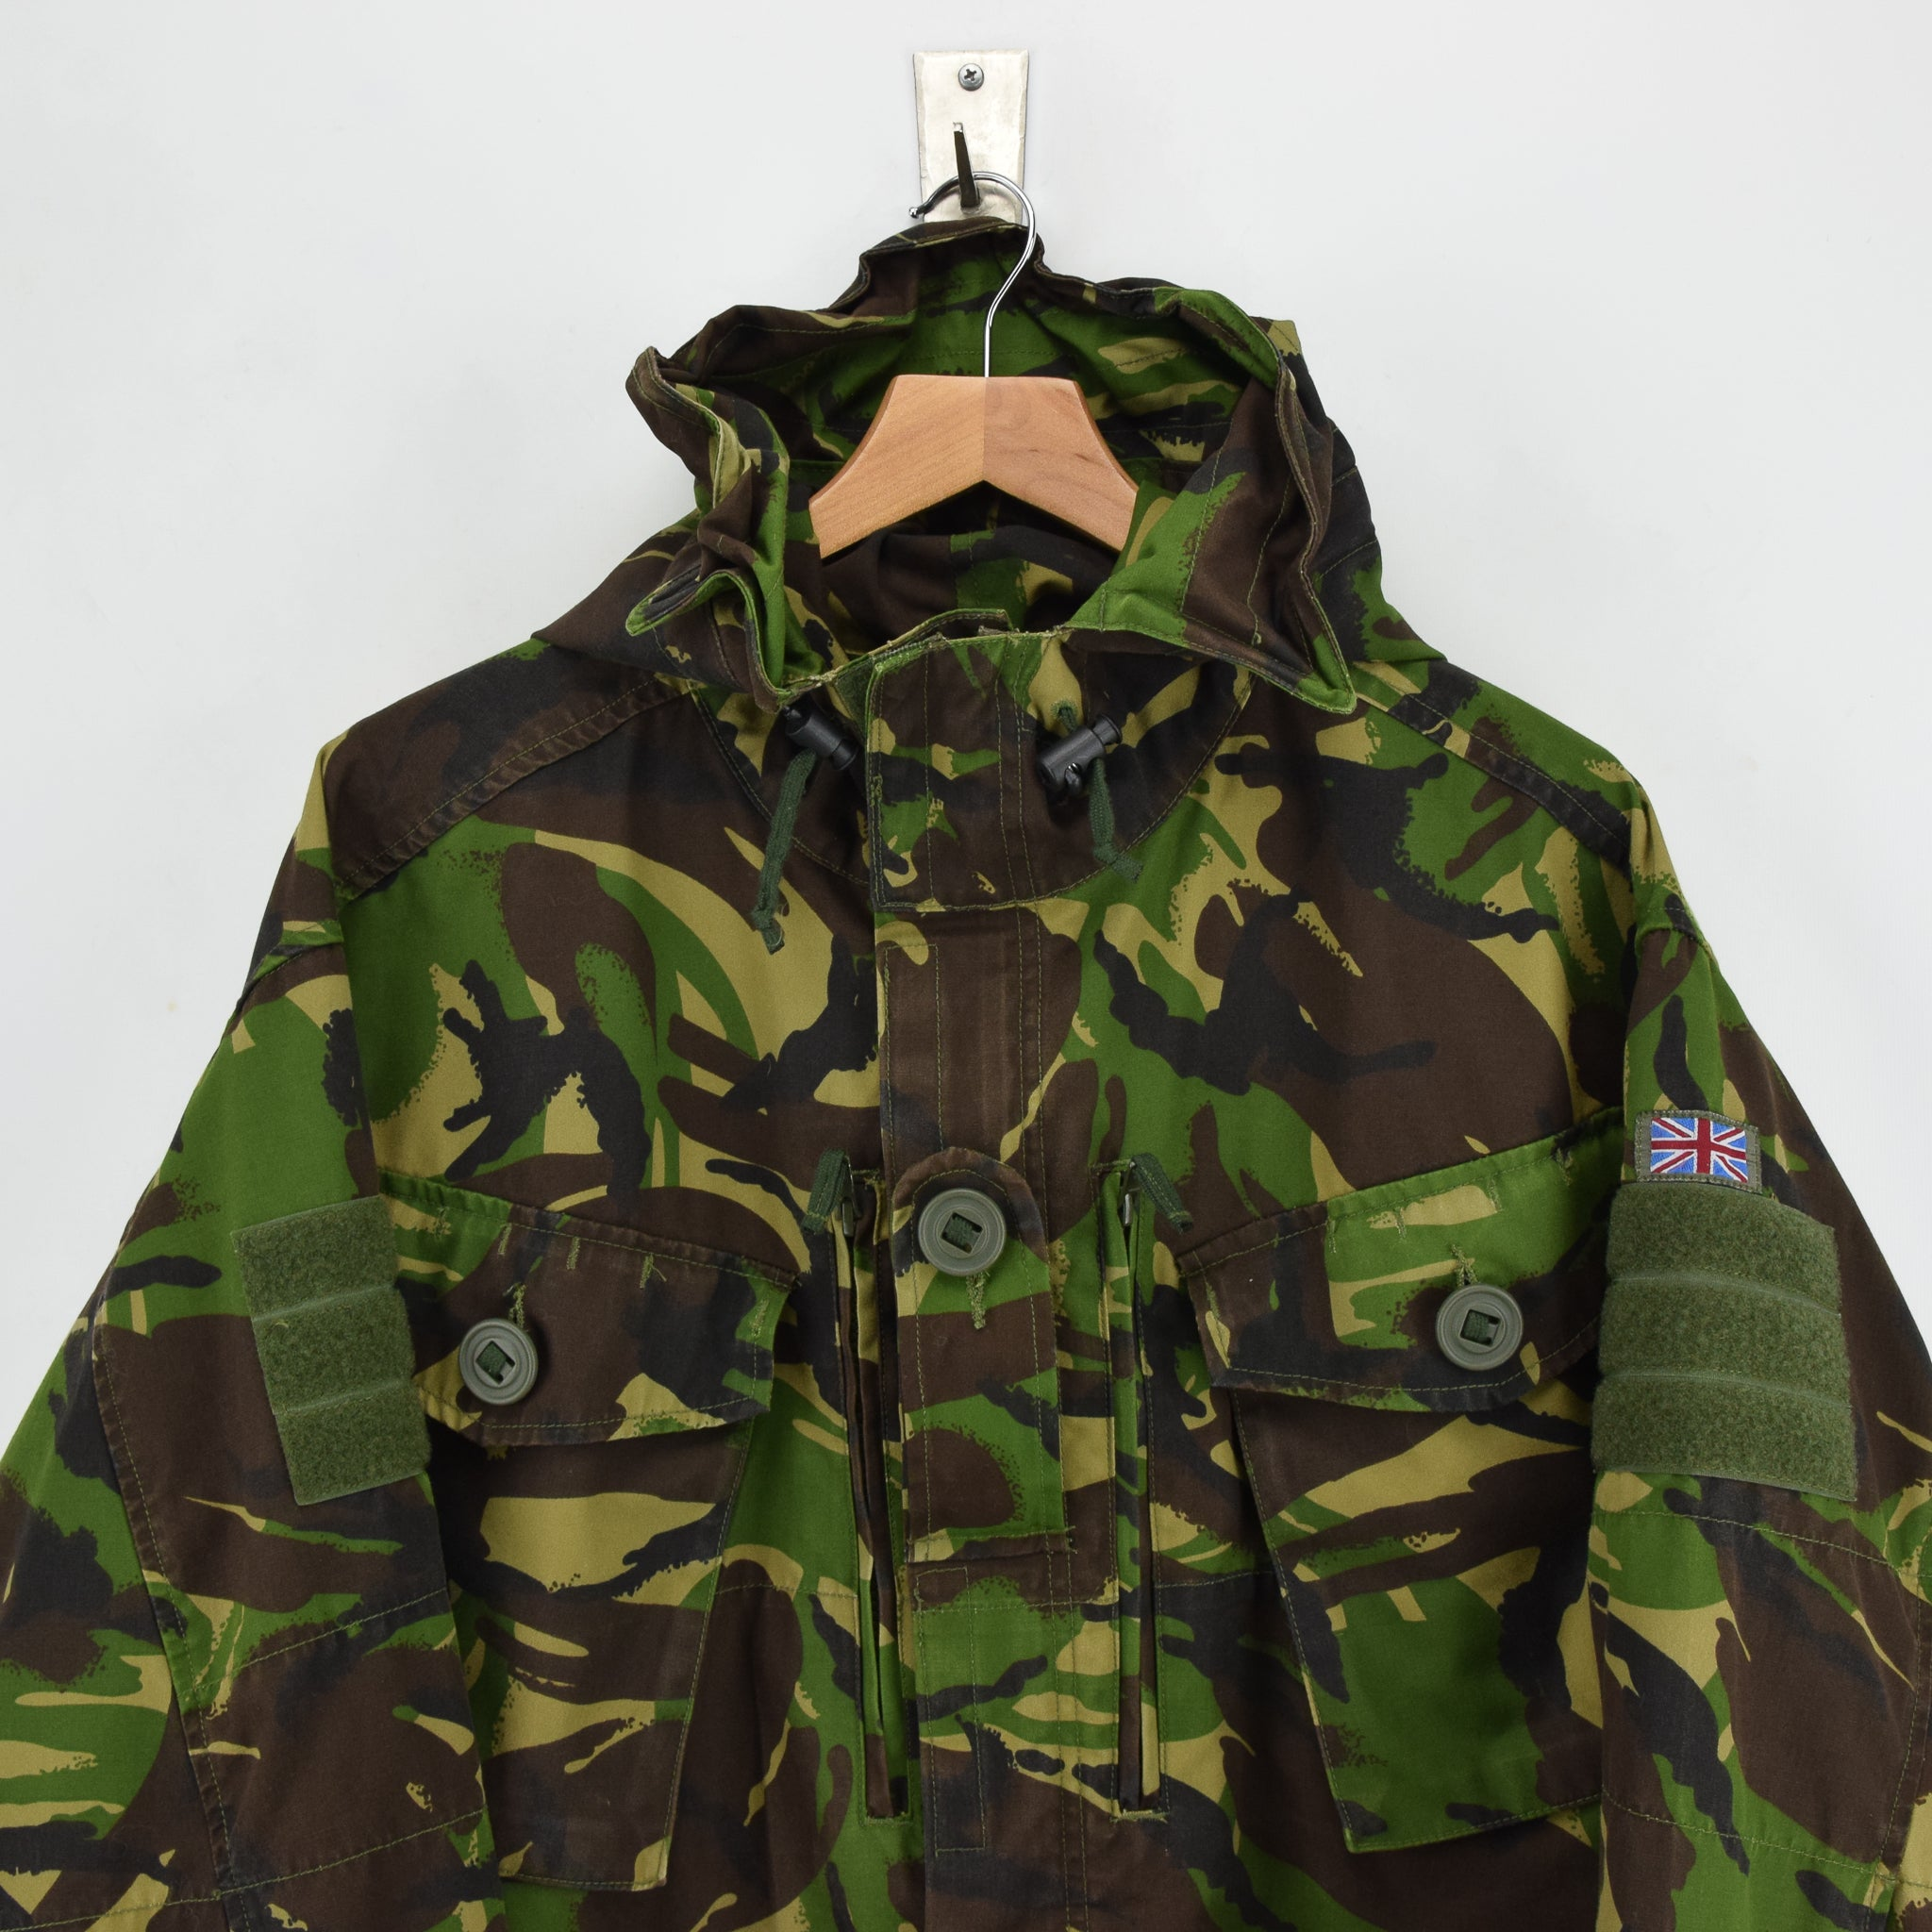 Vintage British Army Windproof Combat Smock Woodland Camo Field Jacket XL / XXL chest